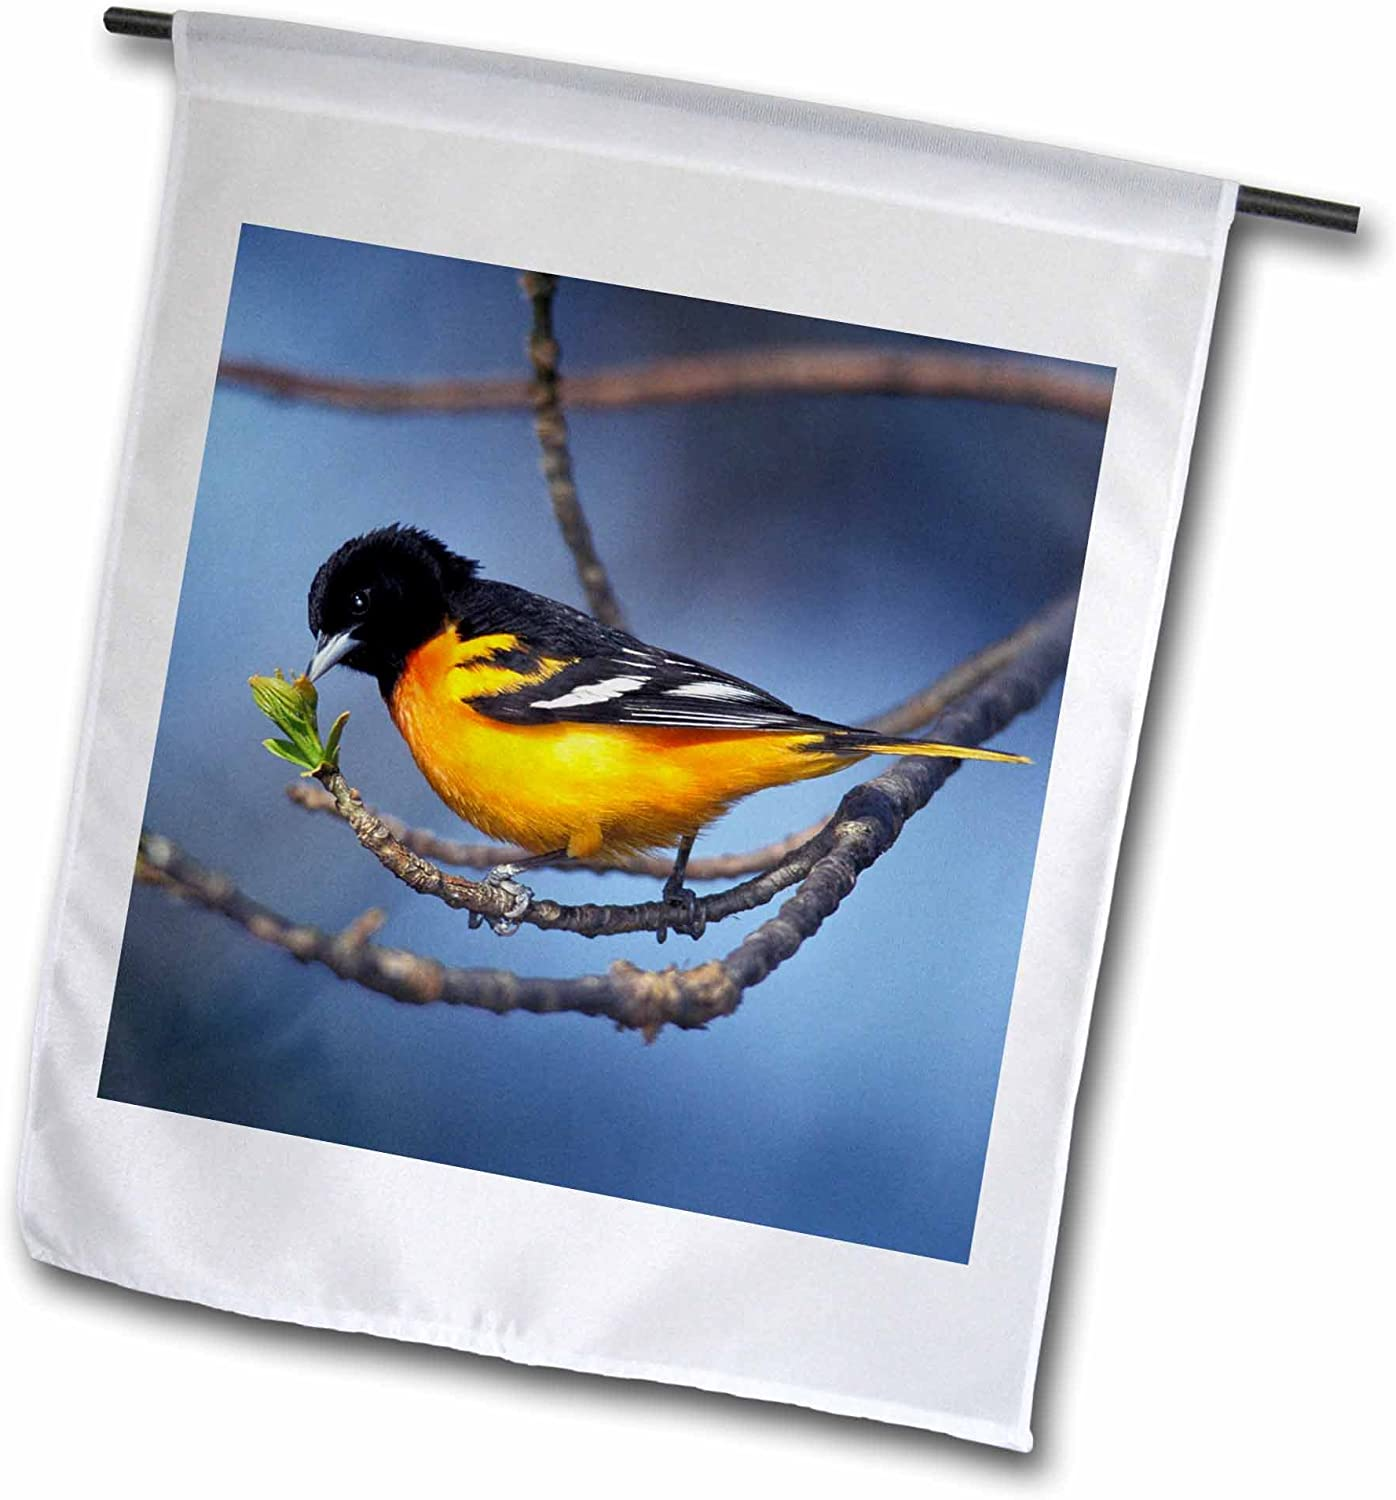 3dRose fl_83569_1 Male Northern Oriole for Merly Baltimore Oriole Bird Na02 Aje0242 Adam Jones Garden Flag, 12 by 18-Inch